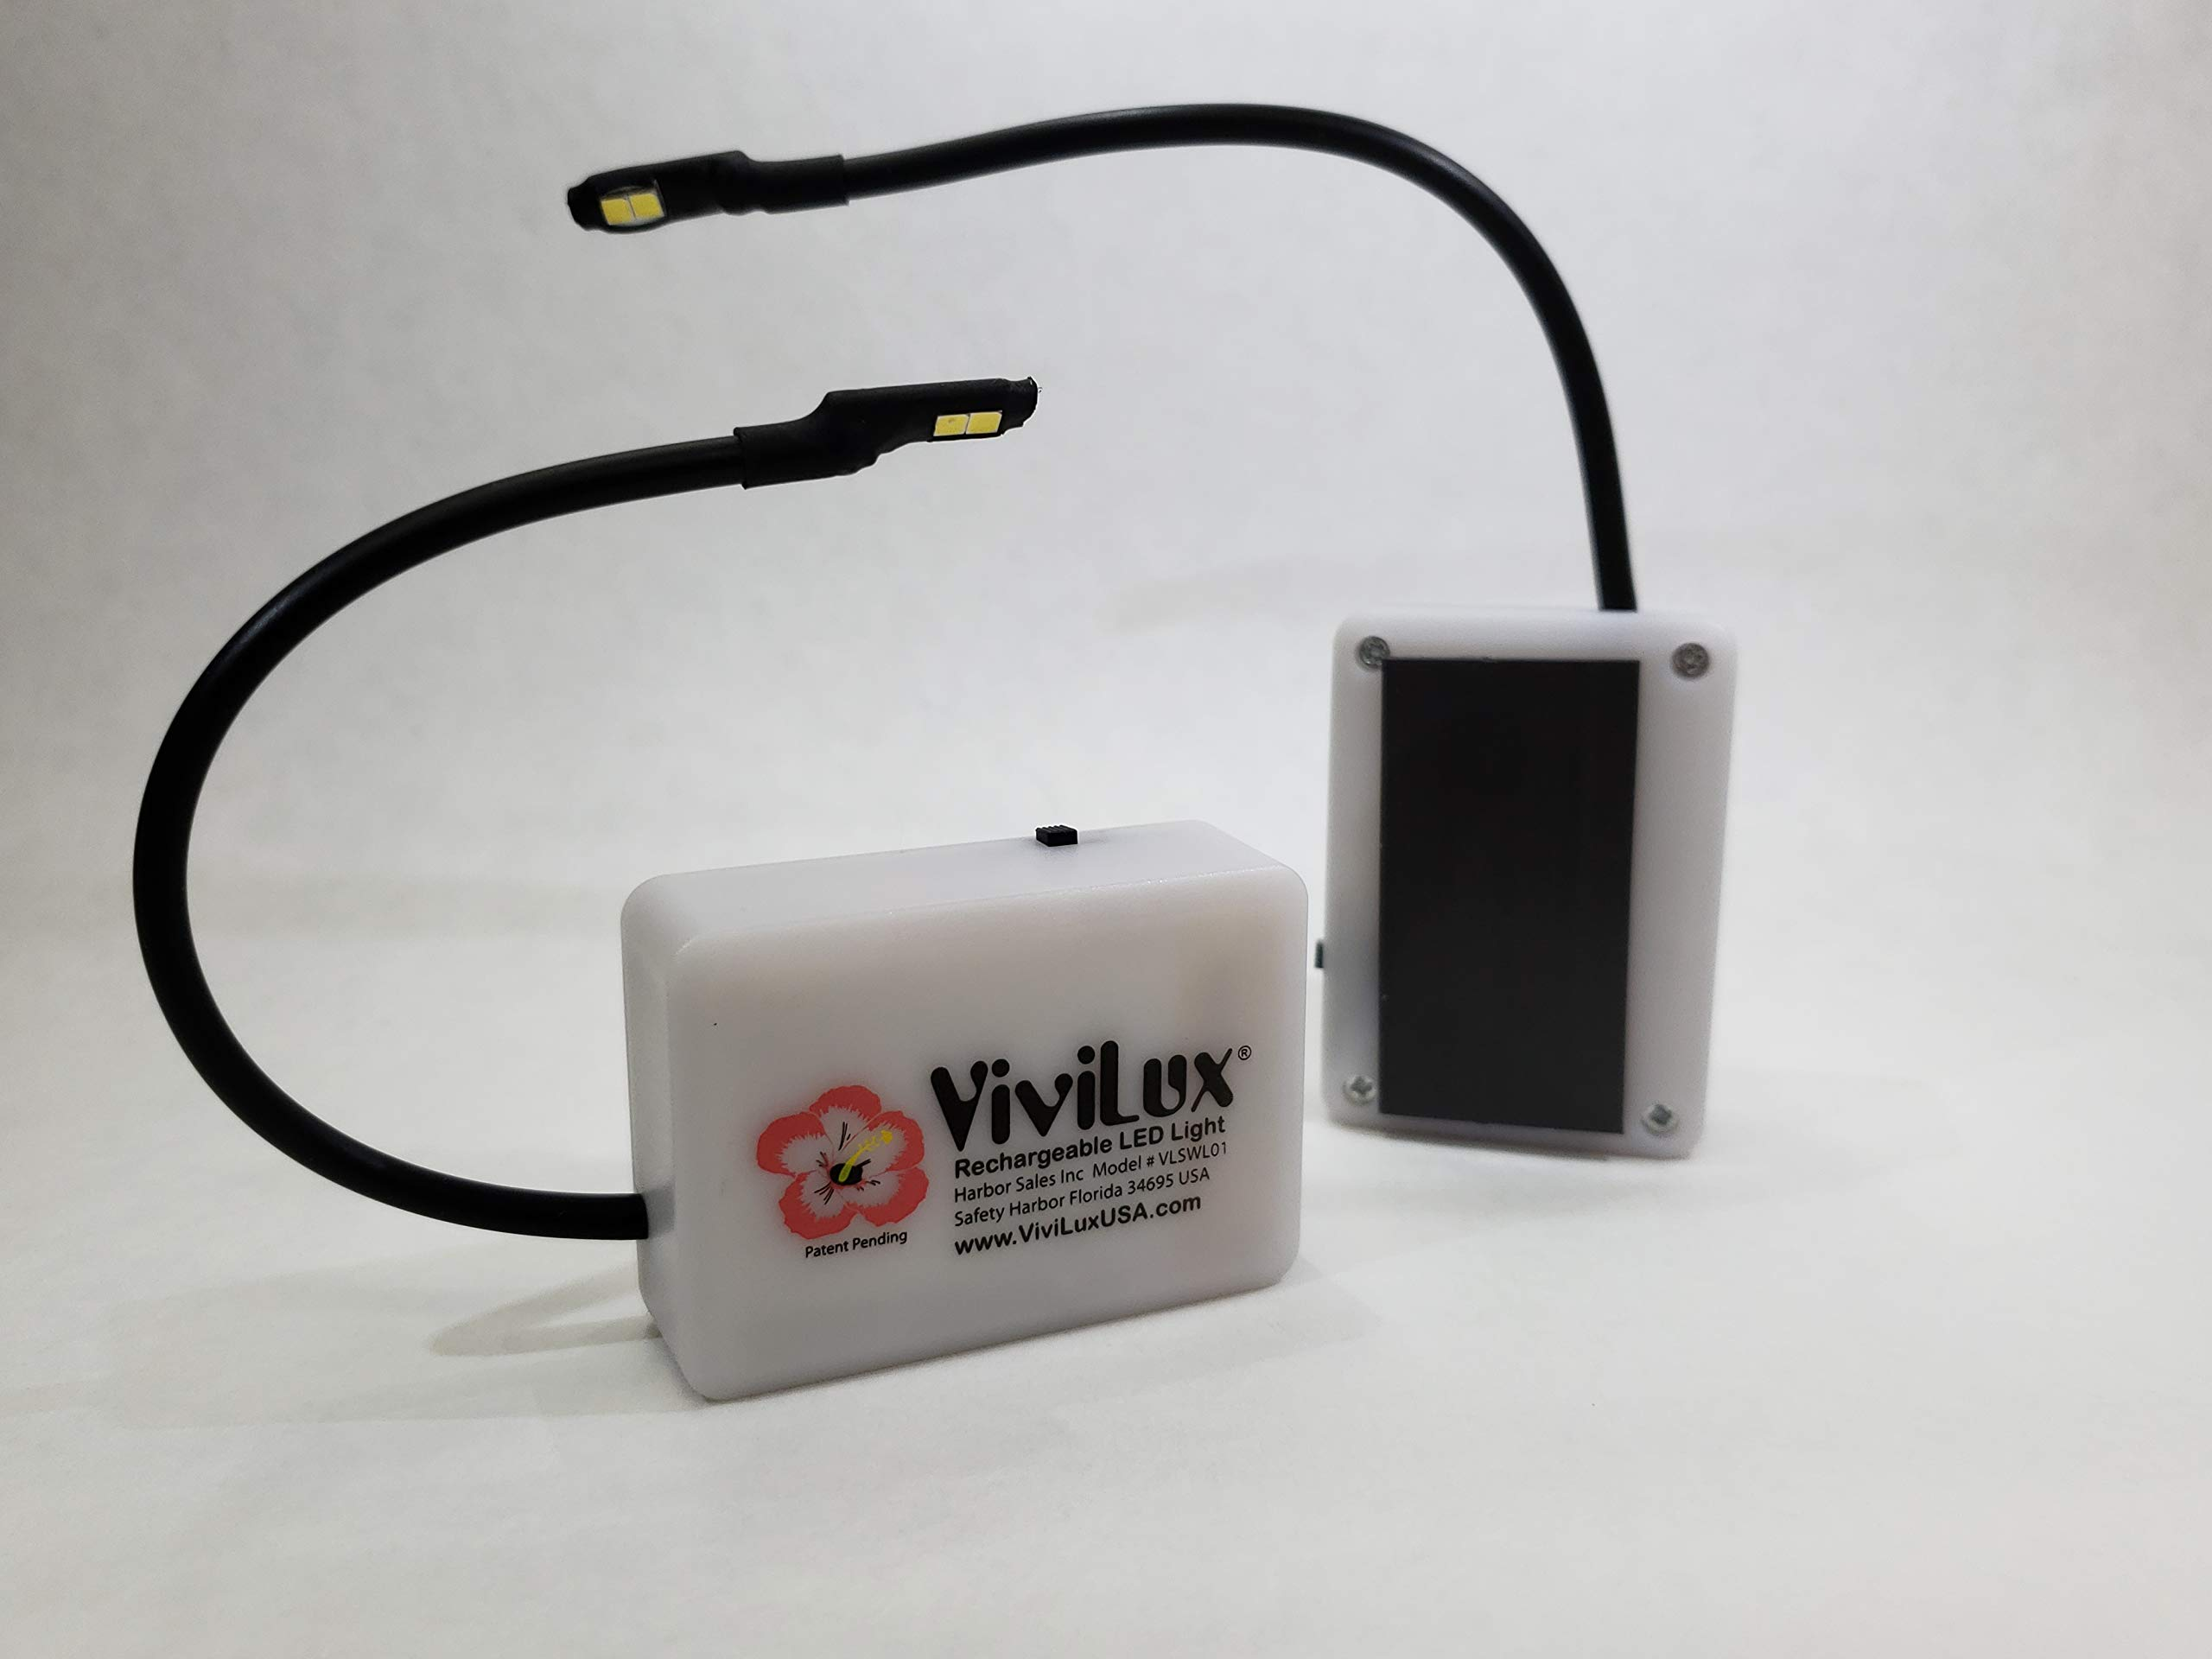 ViviLux Super Bright Flexible Craft Light for Quilting, Sewing, Crafts with Rechargeable Battery (Magnet) US Plug < 5 mW